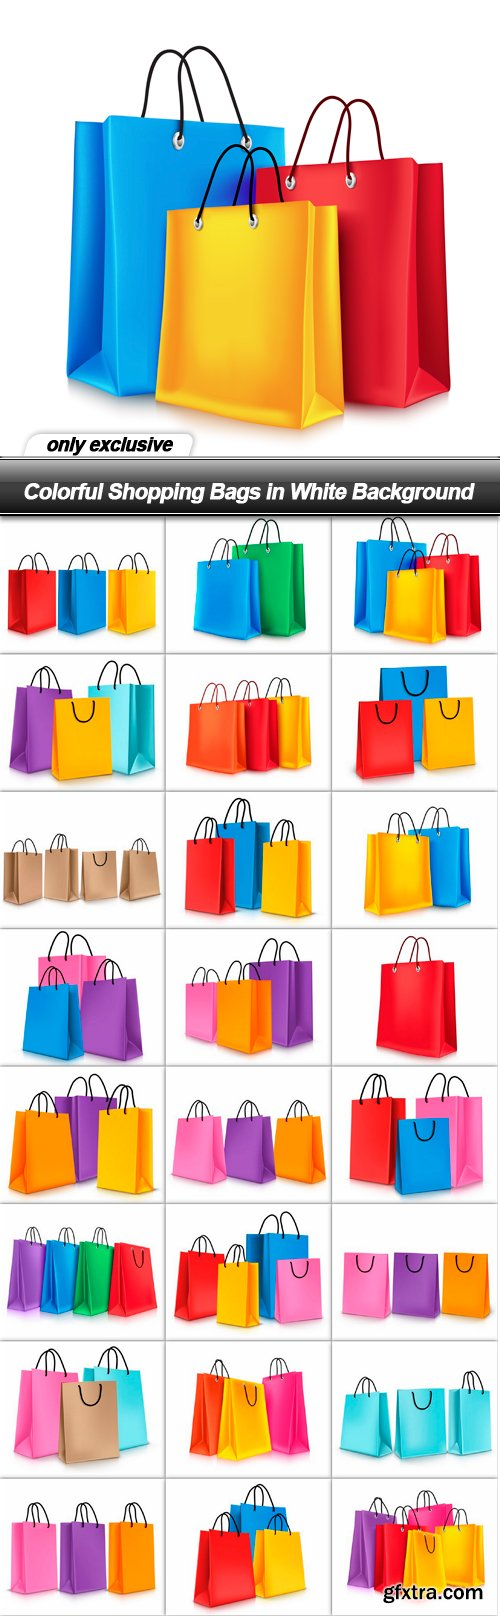 Colorful Shopping Bags in White Background - 24 EPS